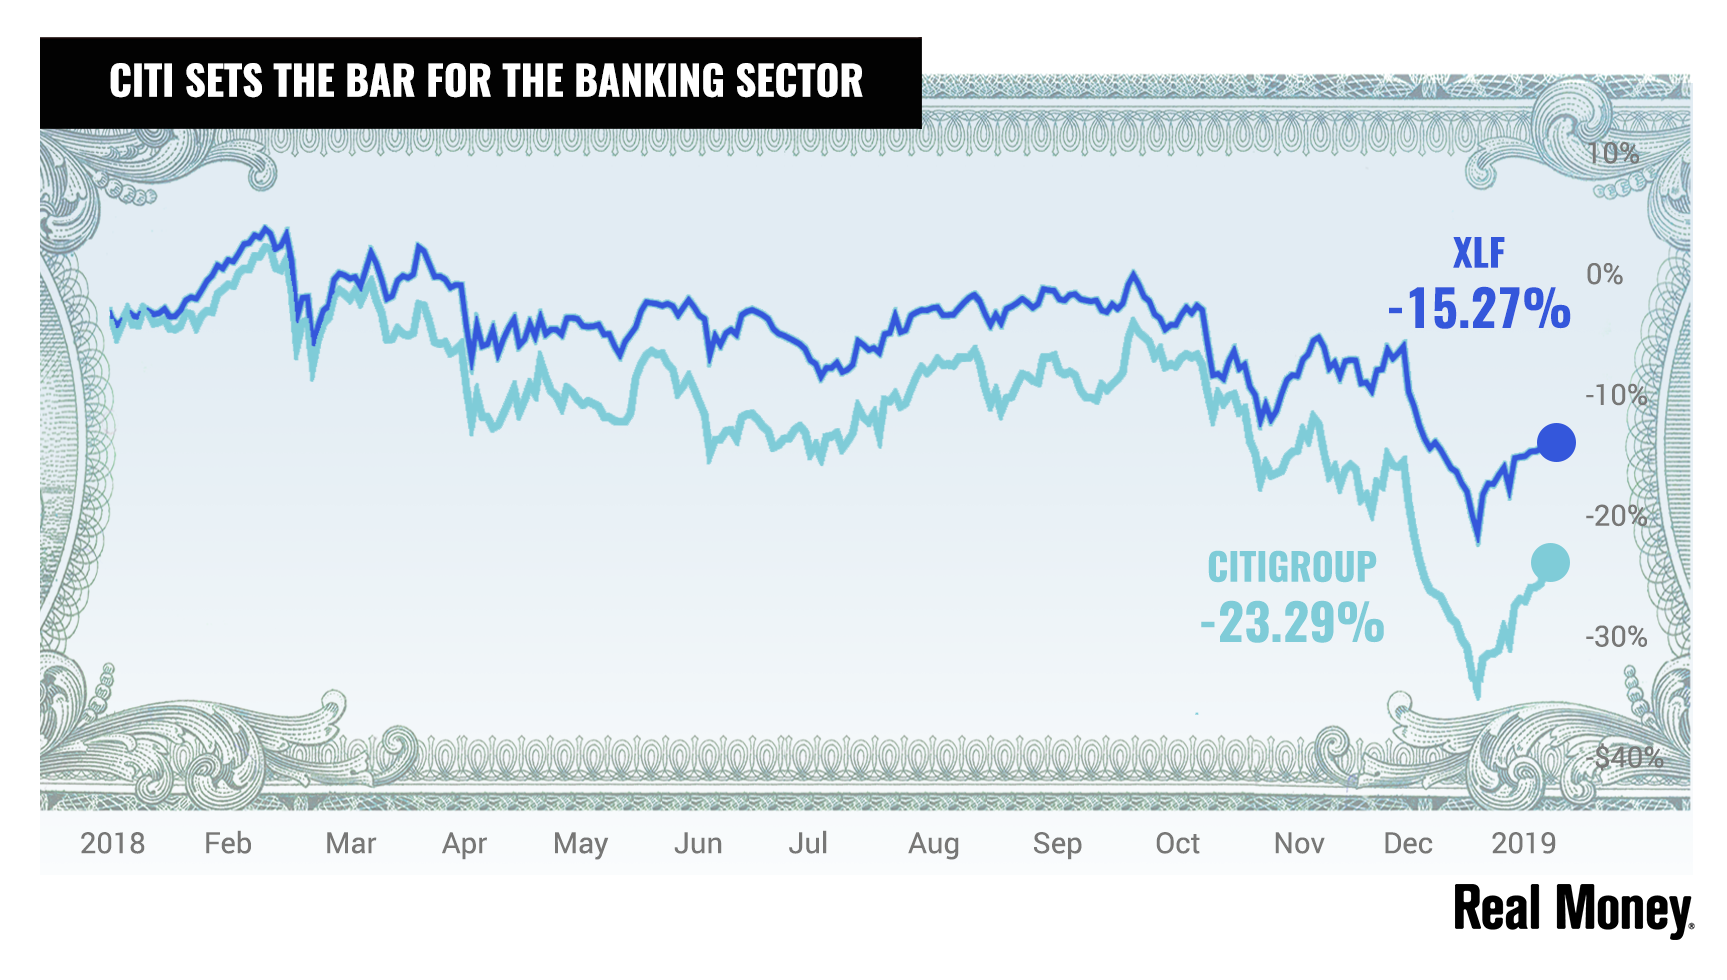 Real Money Report Card: Big Week for Bank Earnings - RealMoney